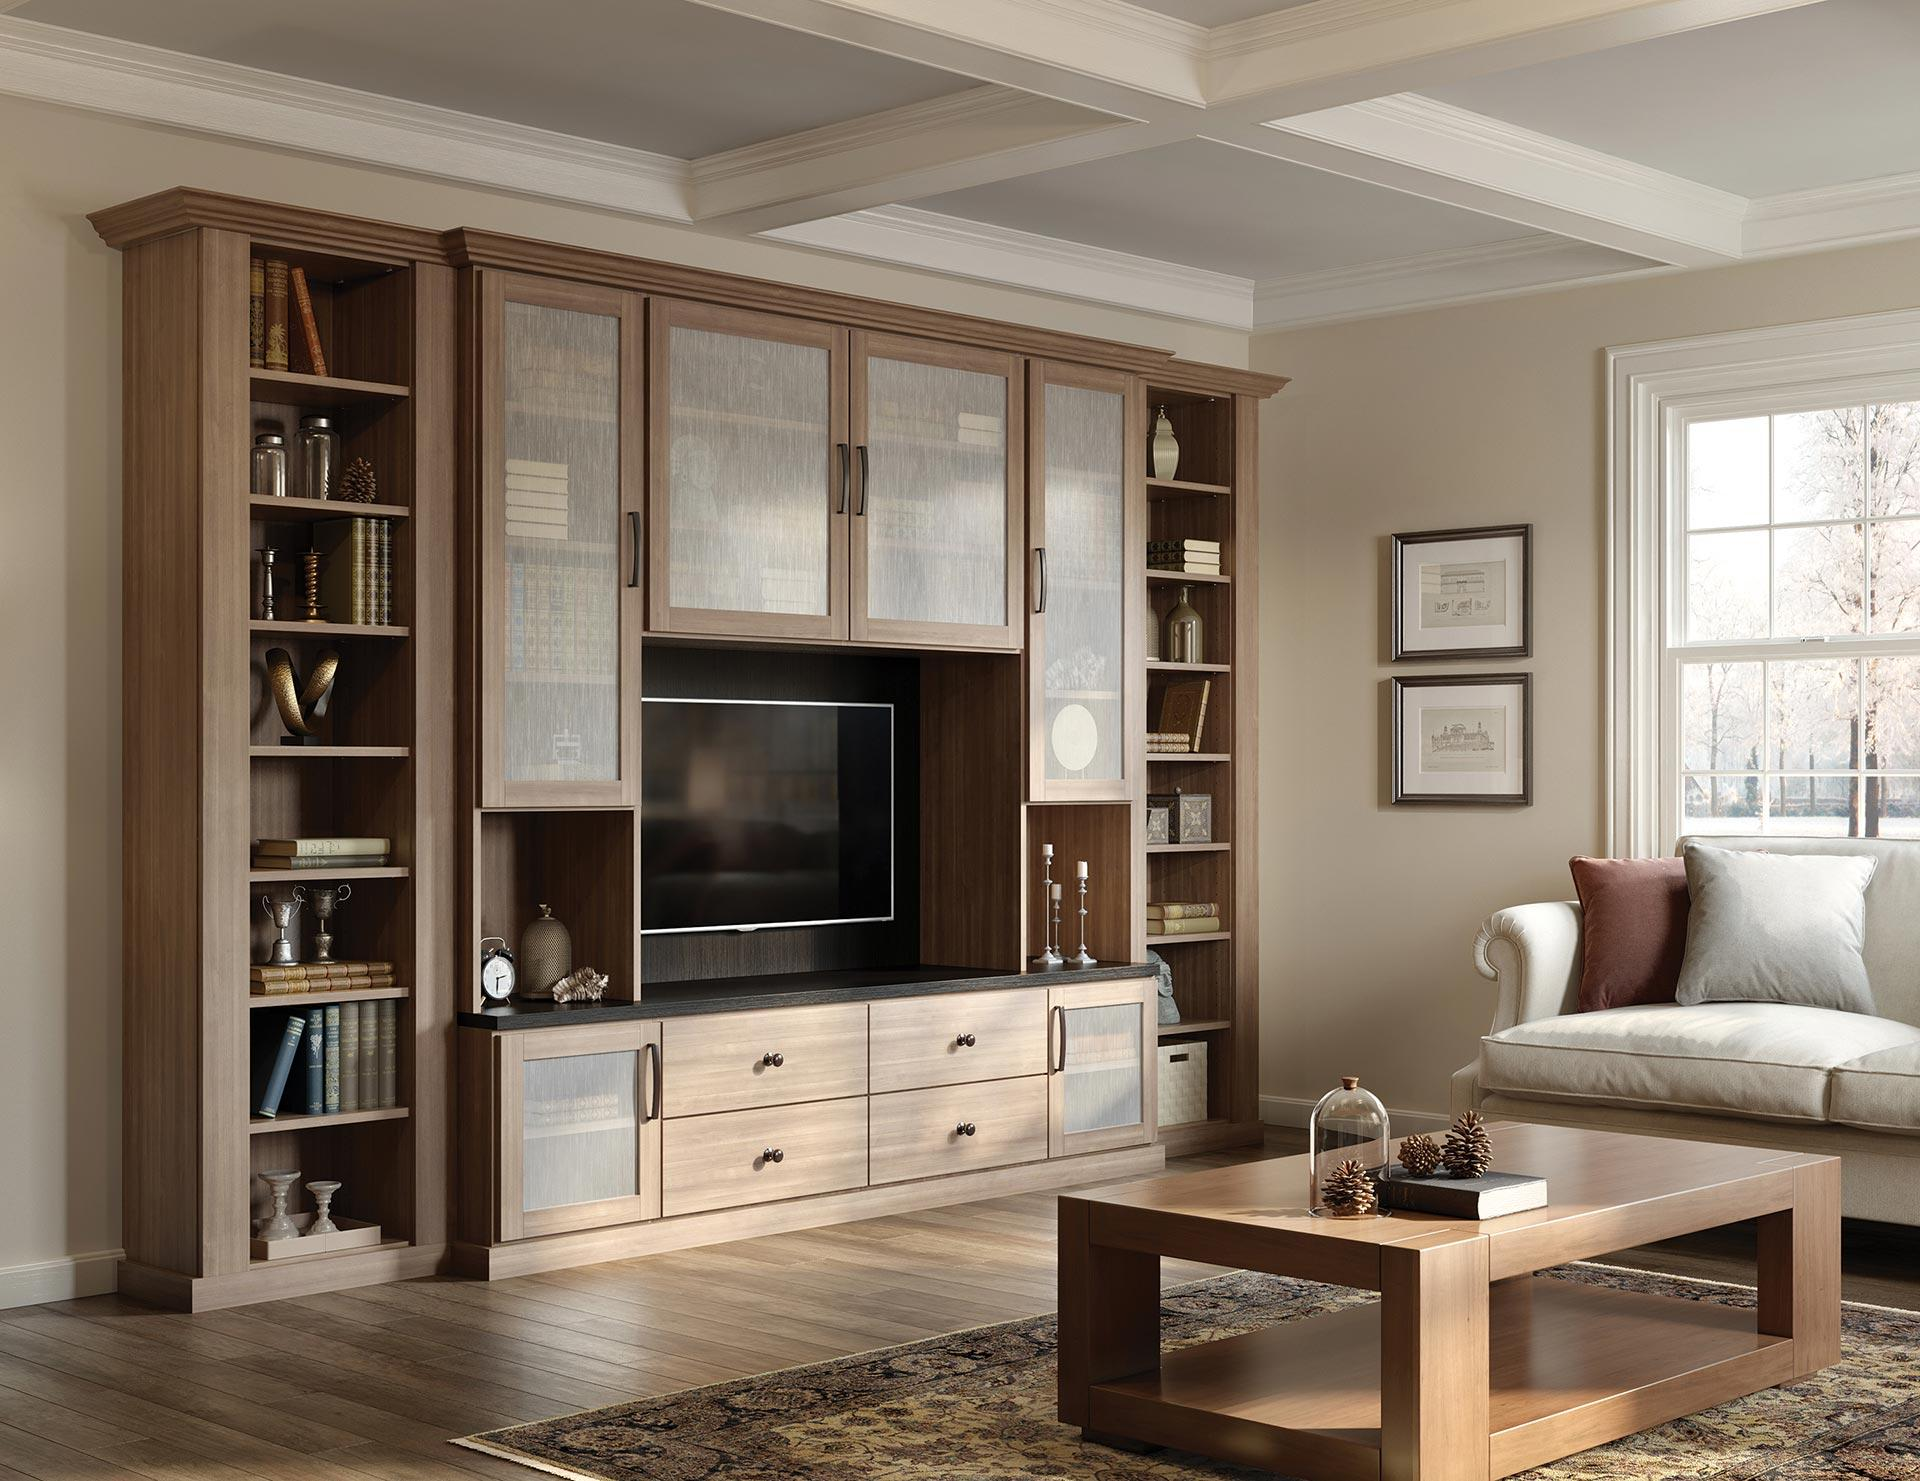 California Closets Toronto - Tisbury Living Room and Entertainment Center